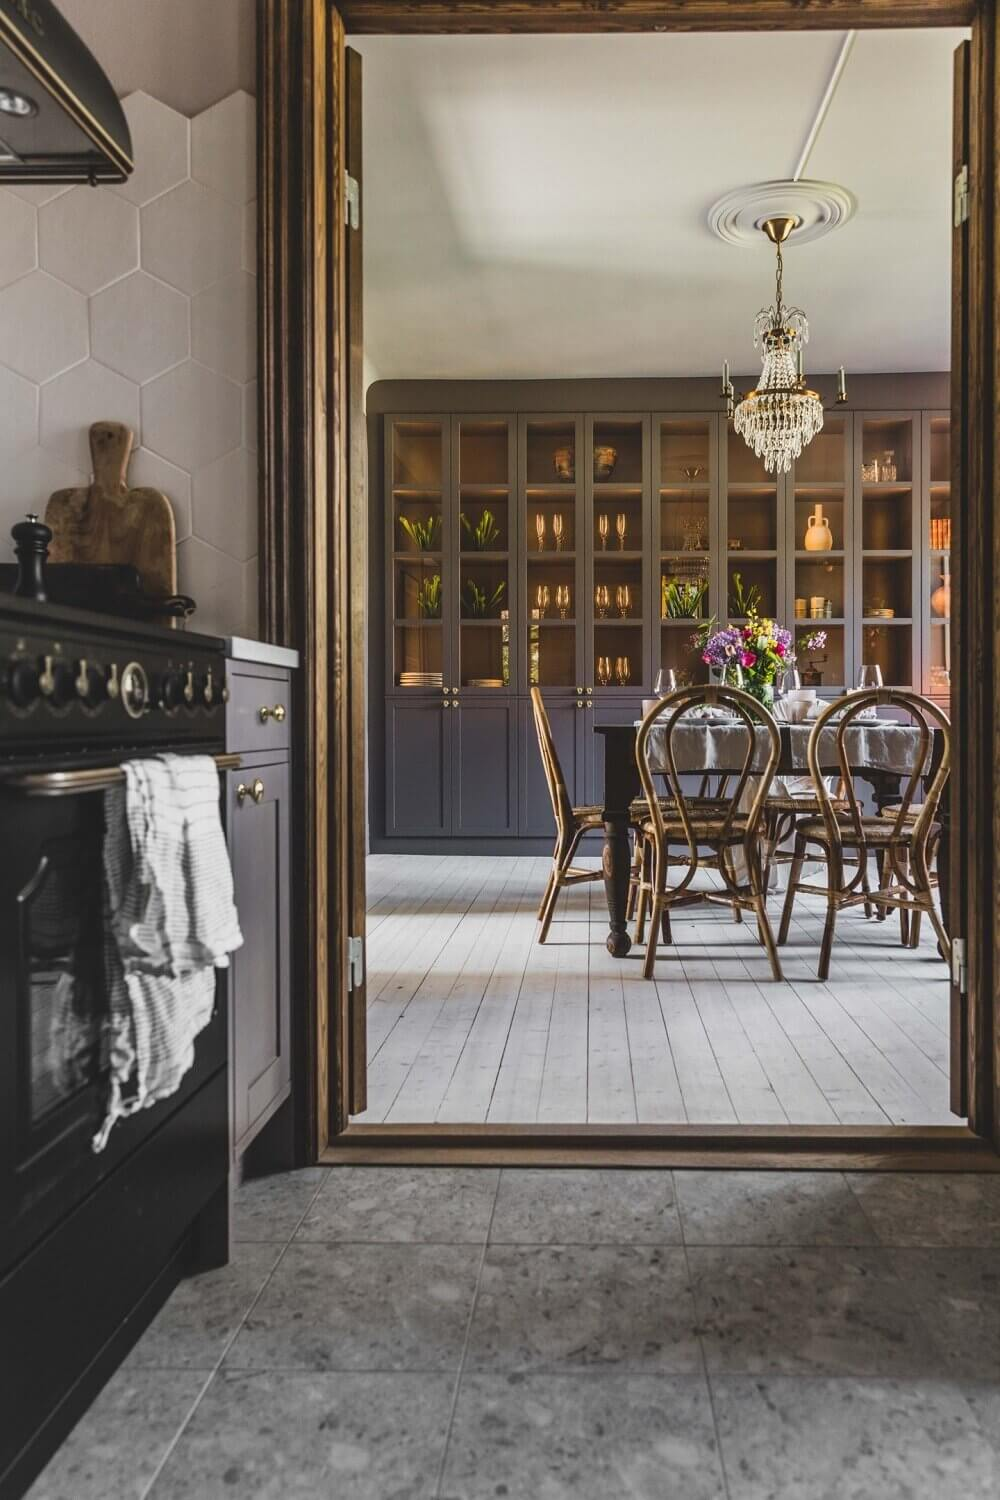 A Charming Swedish Home With A Historic Look